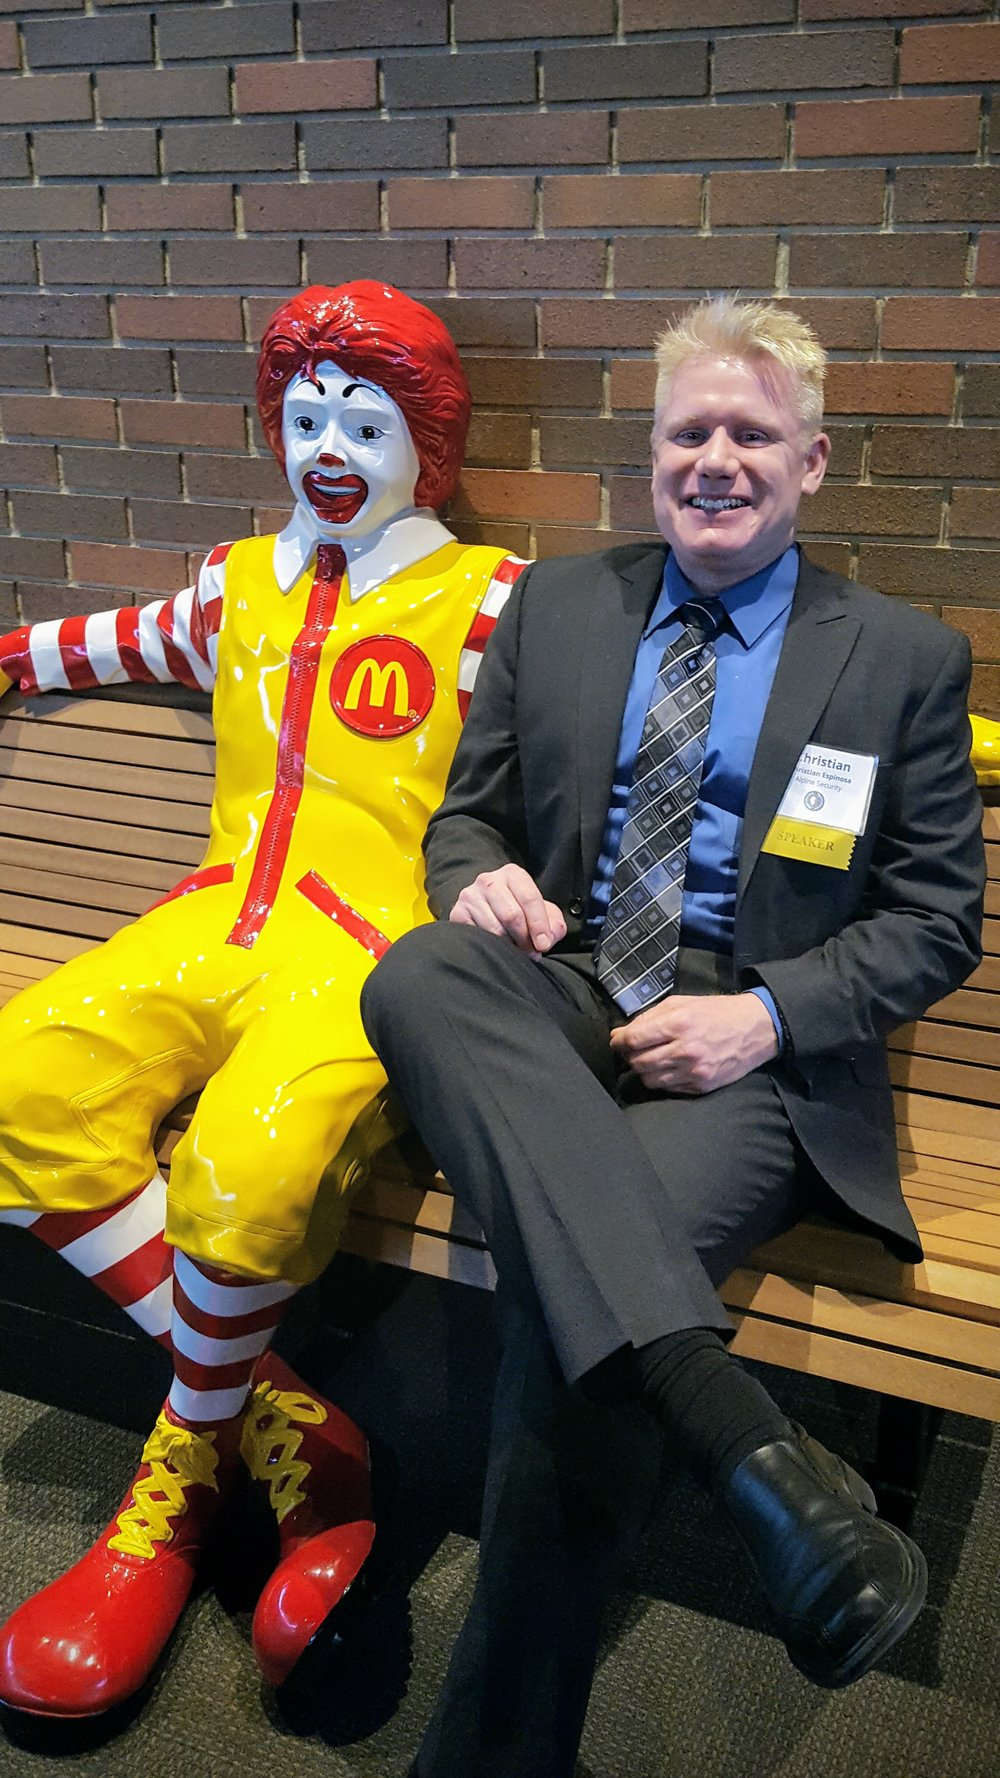 Christian, hanging out with Ronald, at Hamburger University during the Conference on Enterprise Excellence